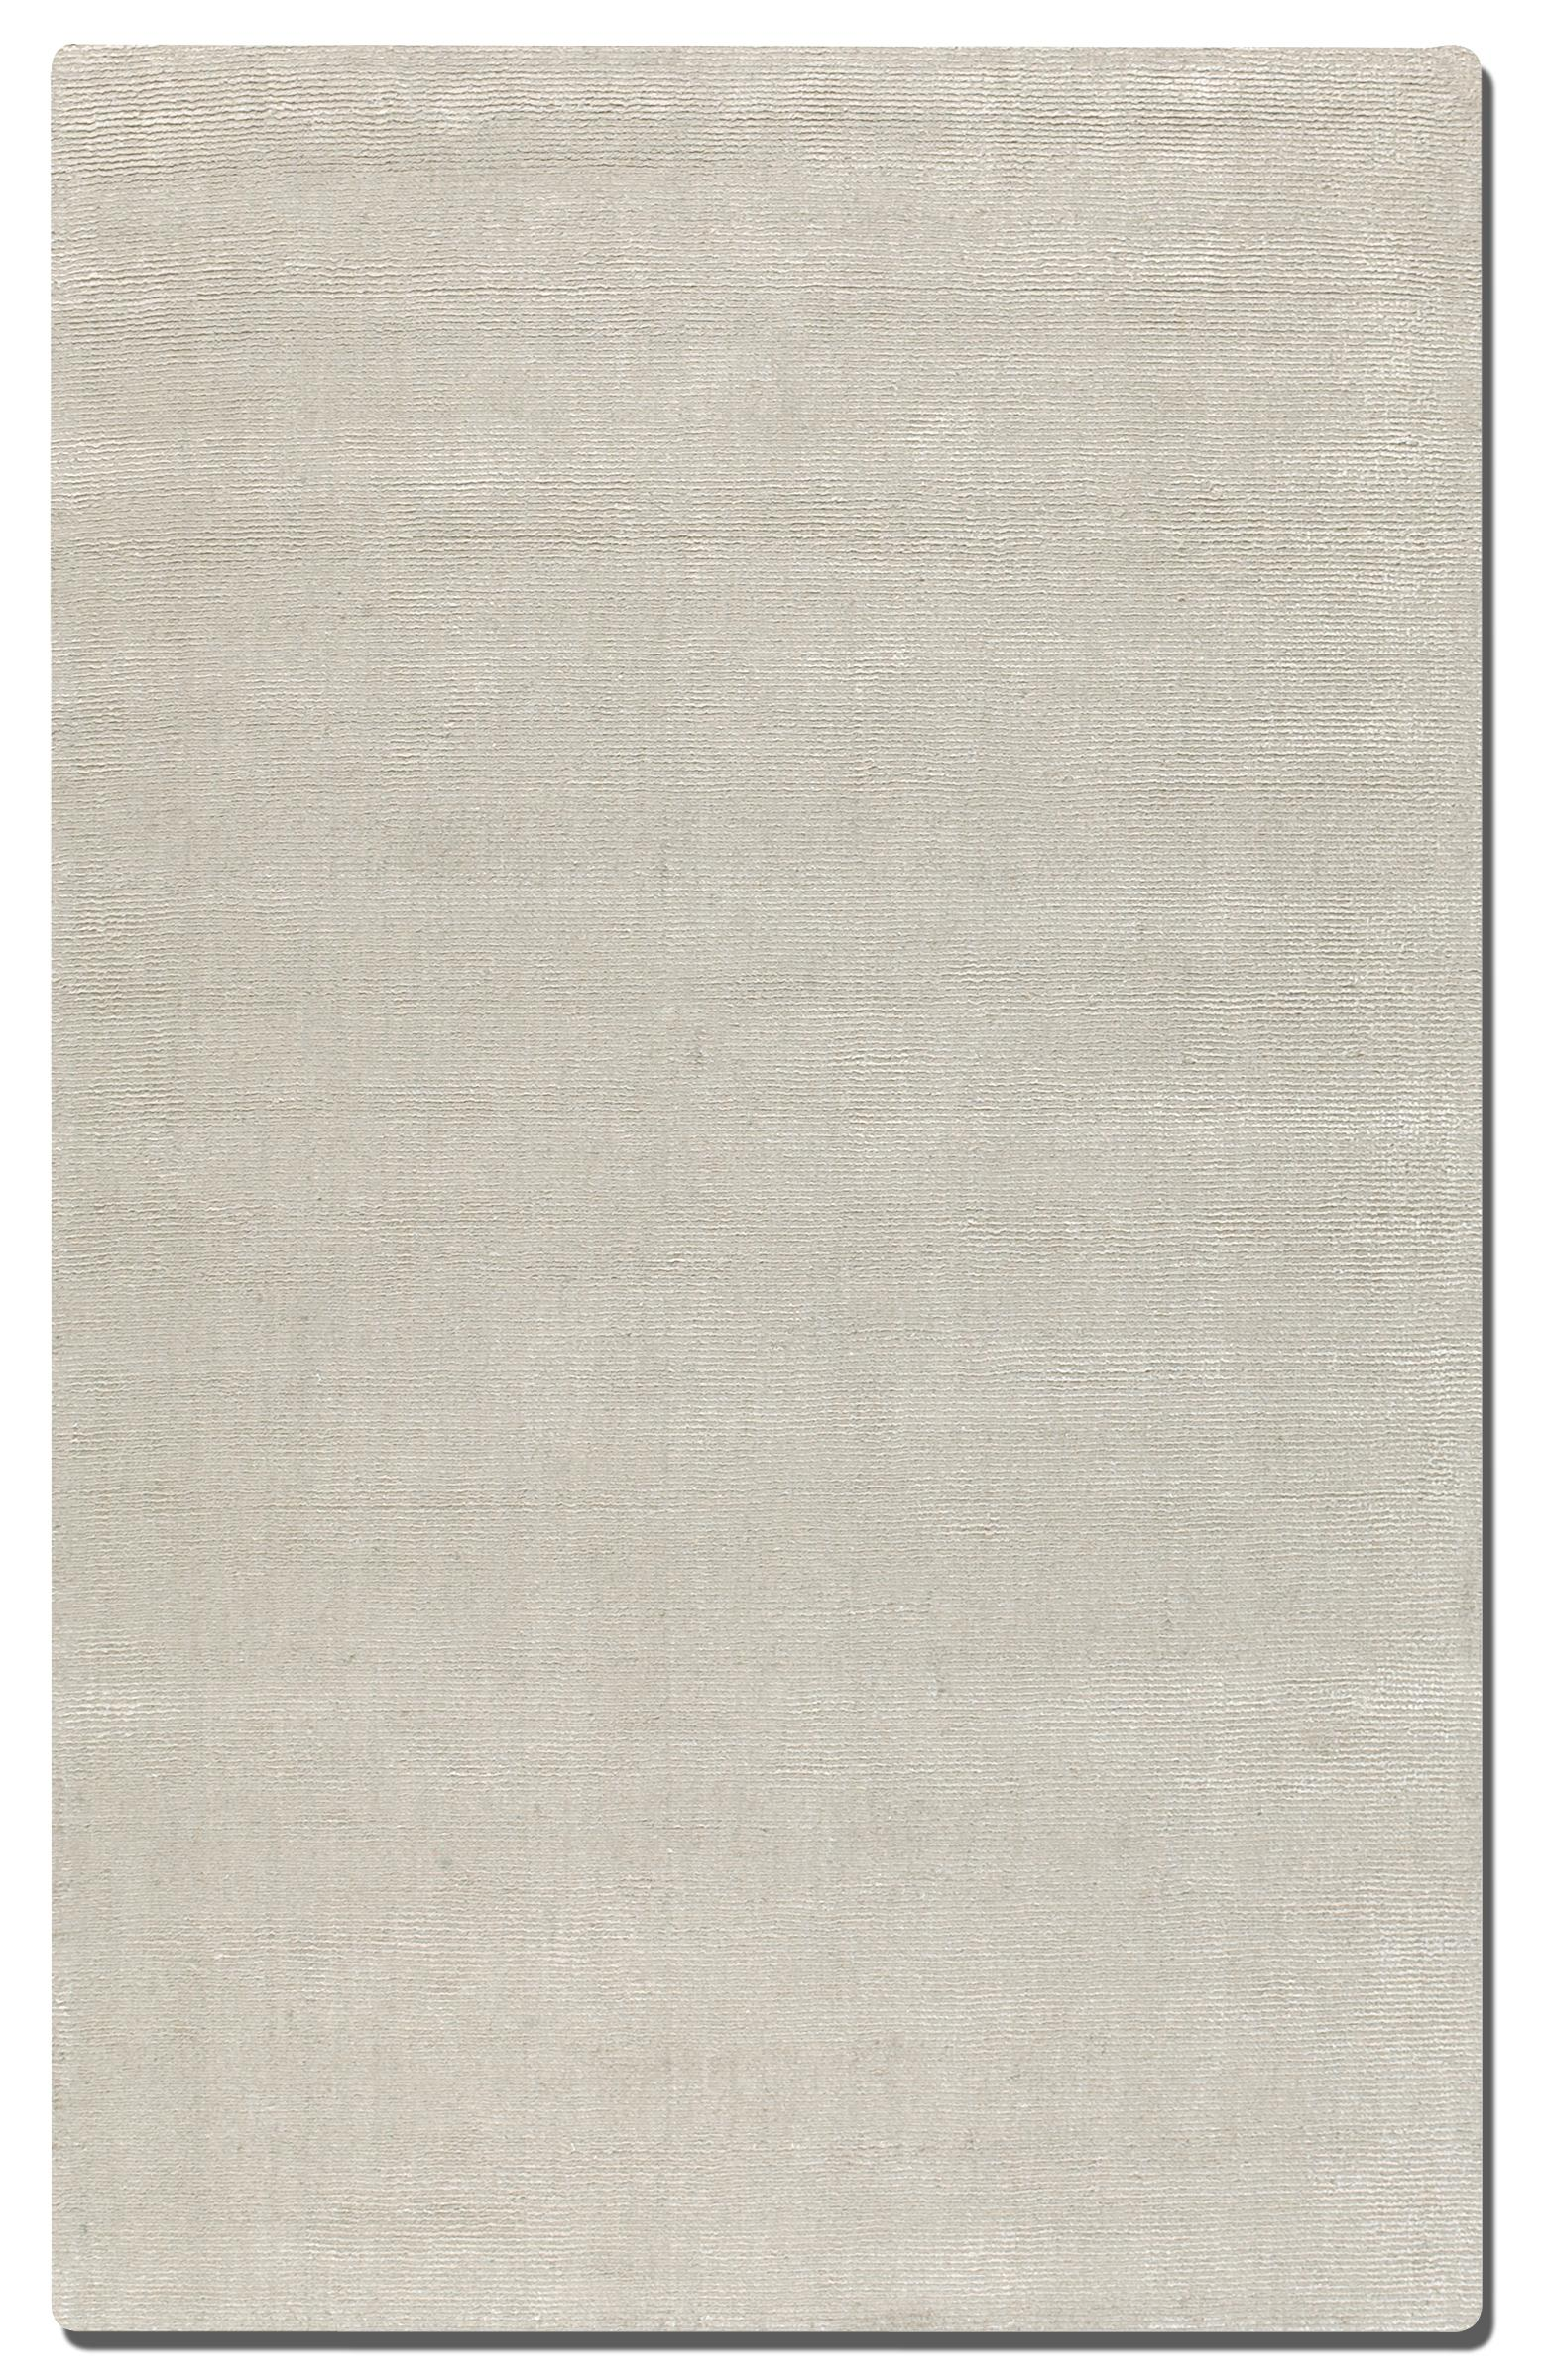 Uttermost Rugs Rhine 5 X 8  - Item Number: 73036-5